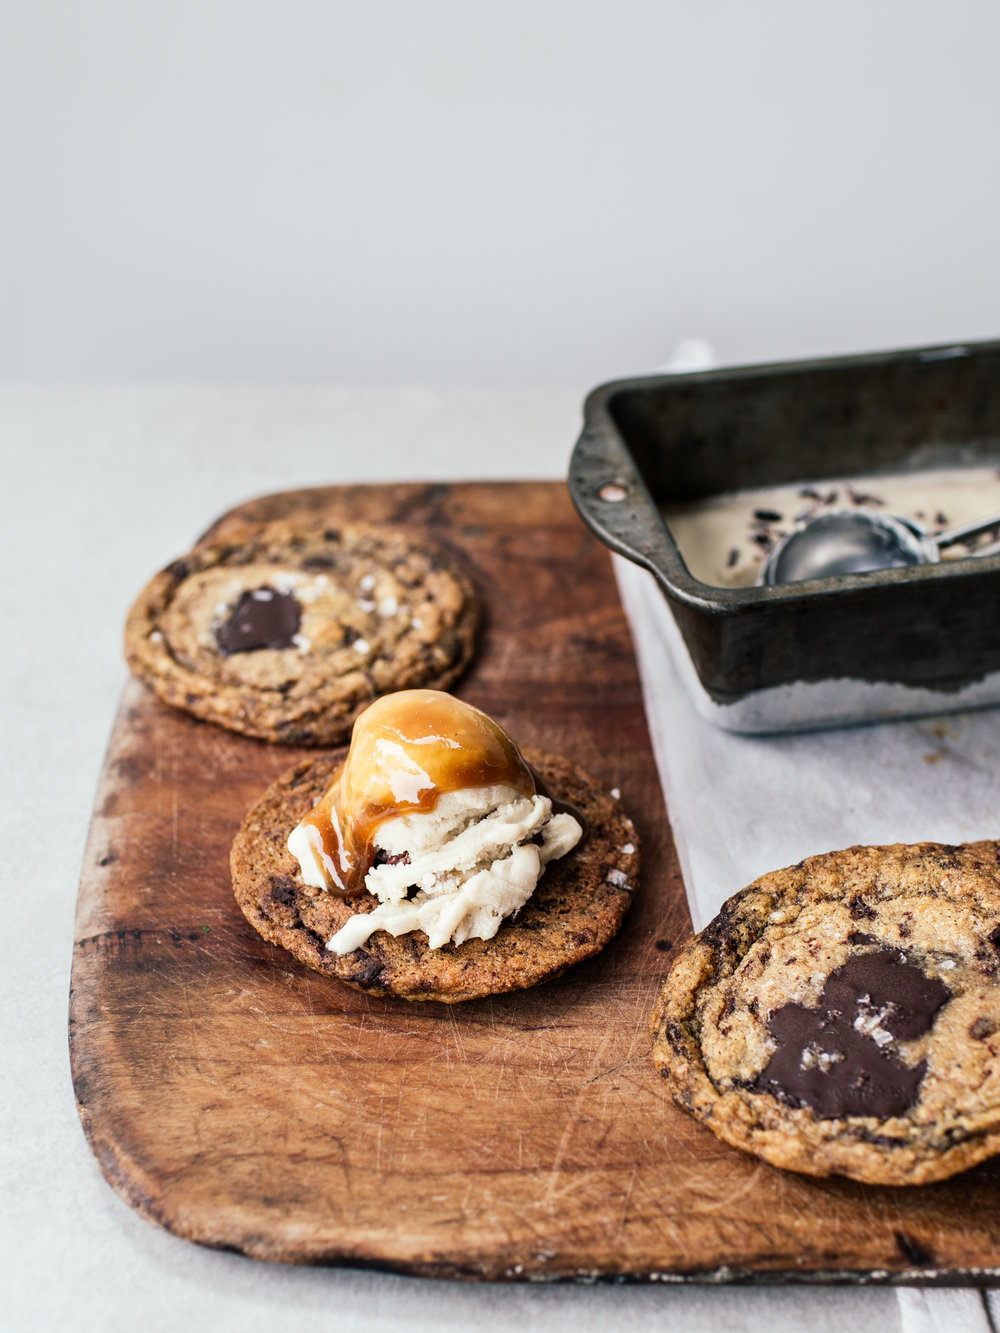 Banoffee Ice Cream Sandwiches By Izy Hossack